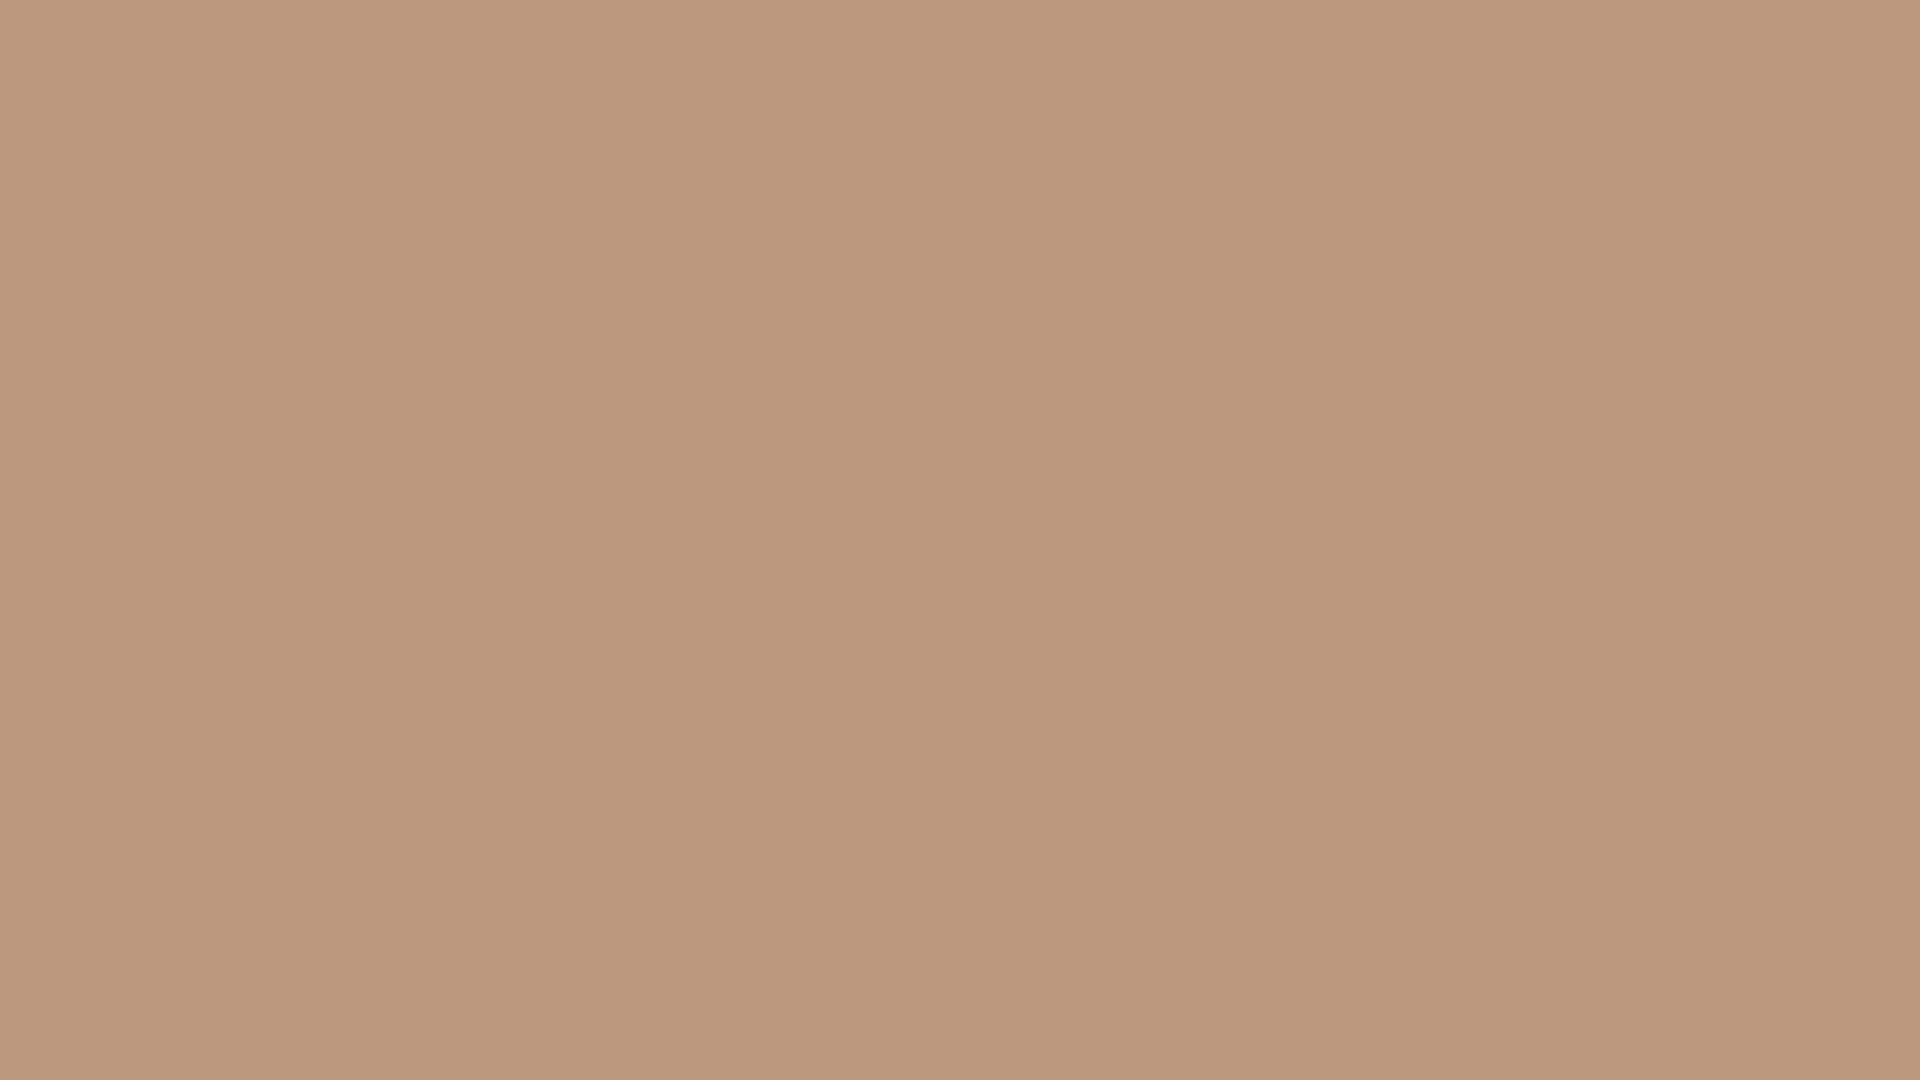 1920x1080 Pale Taupe Solid Color Background